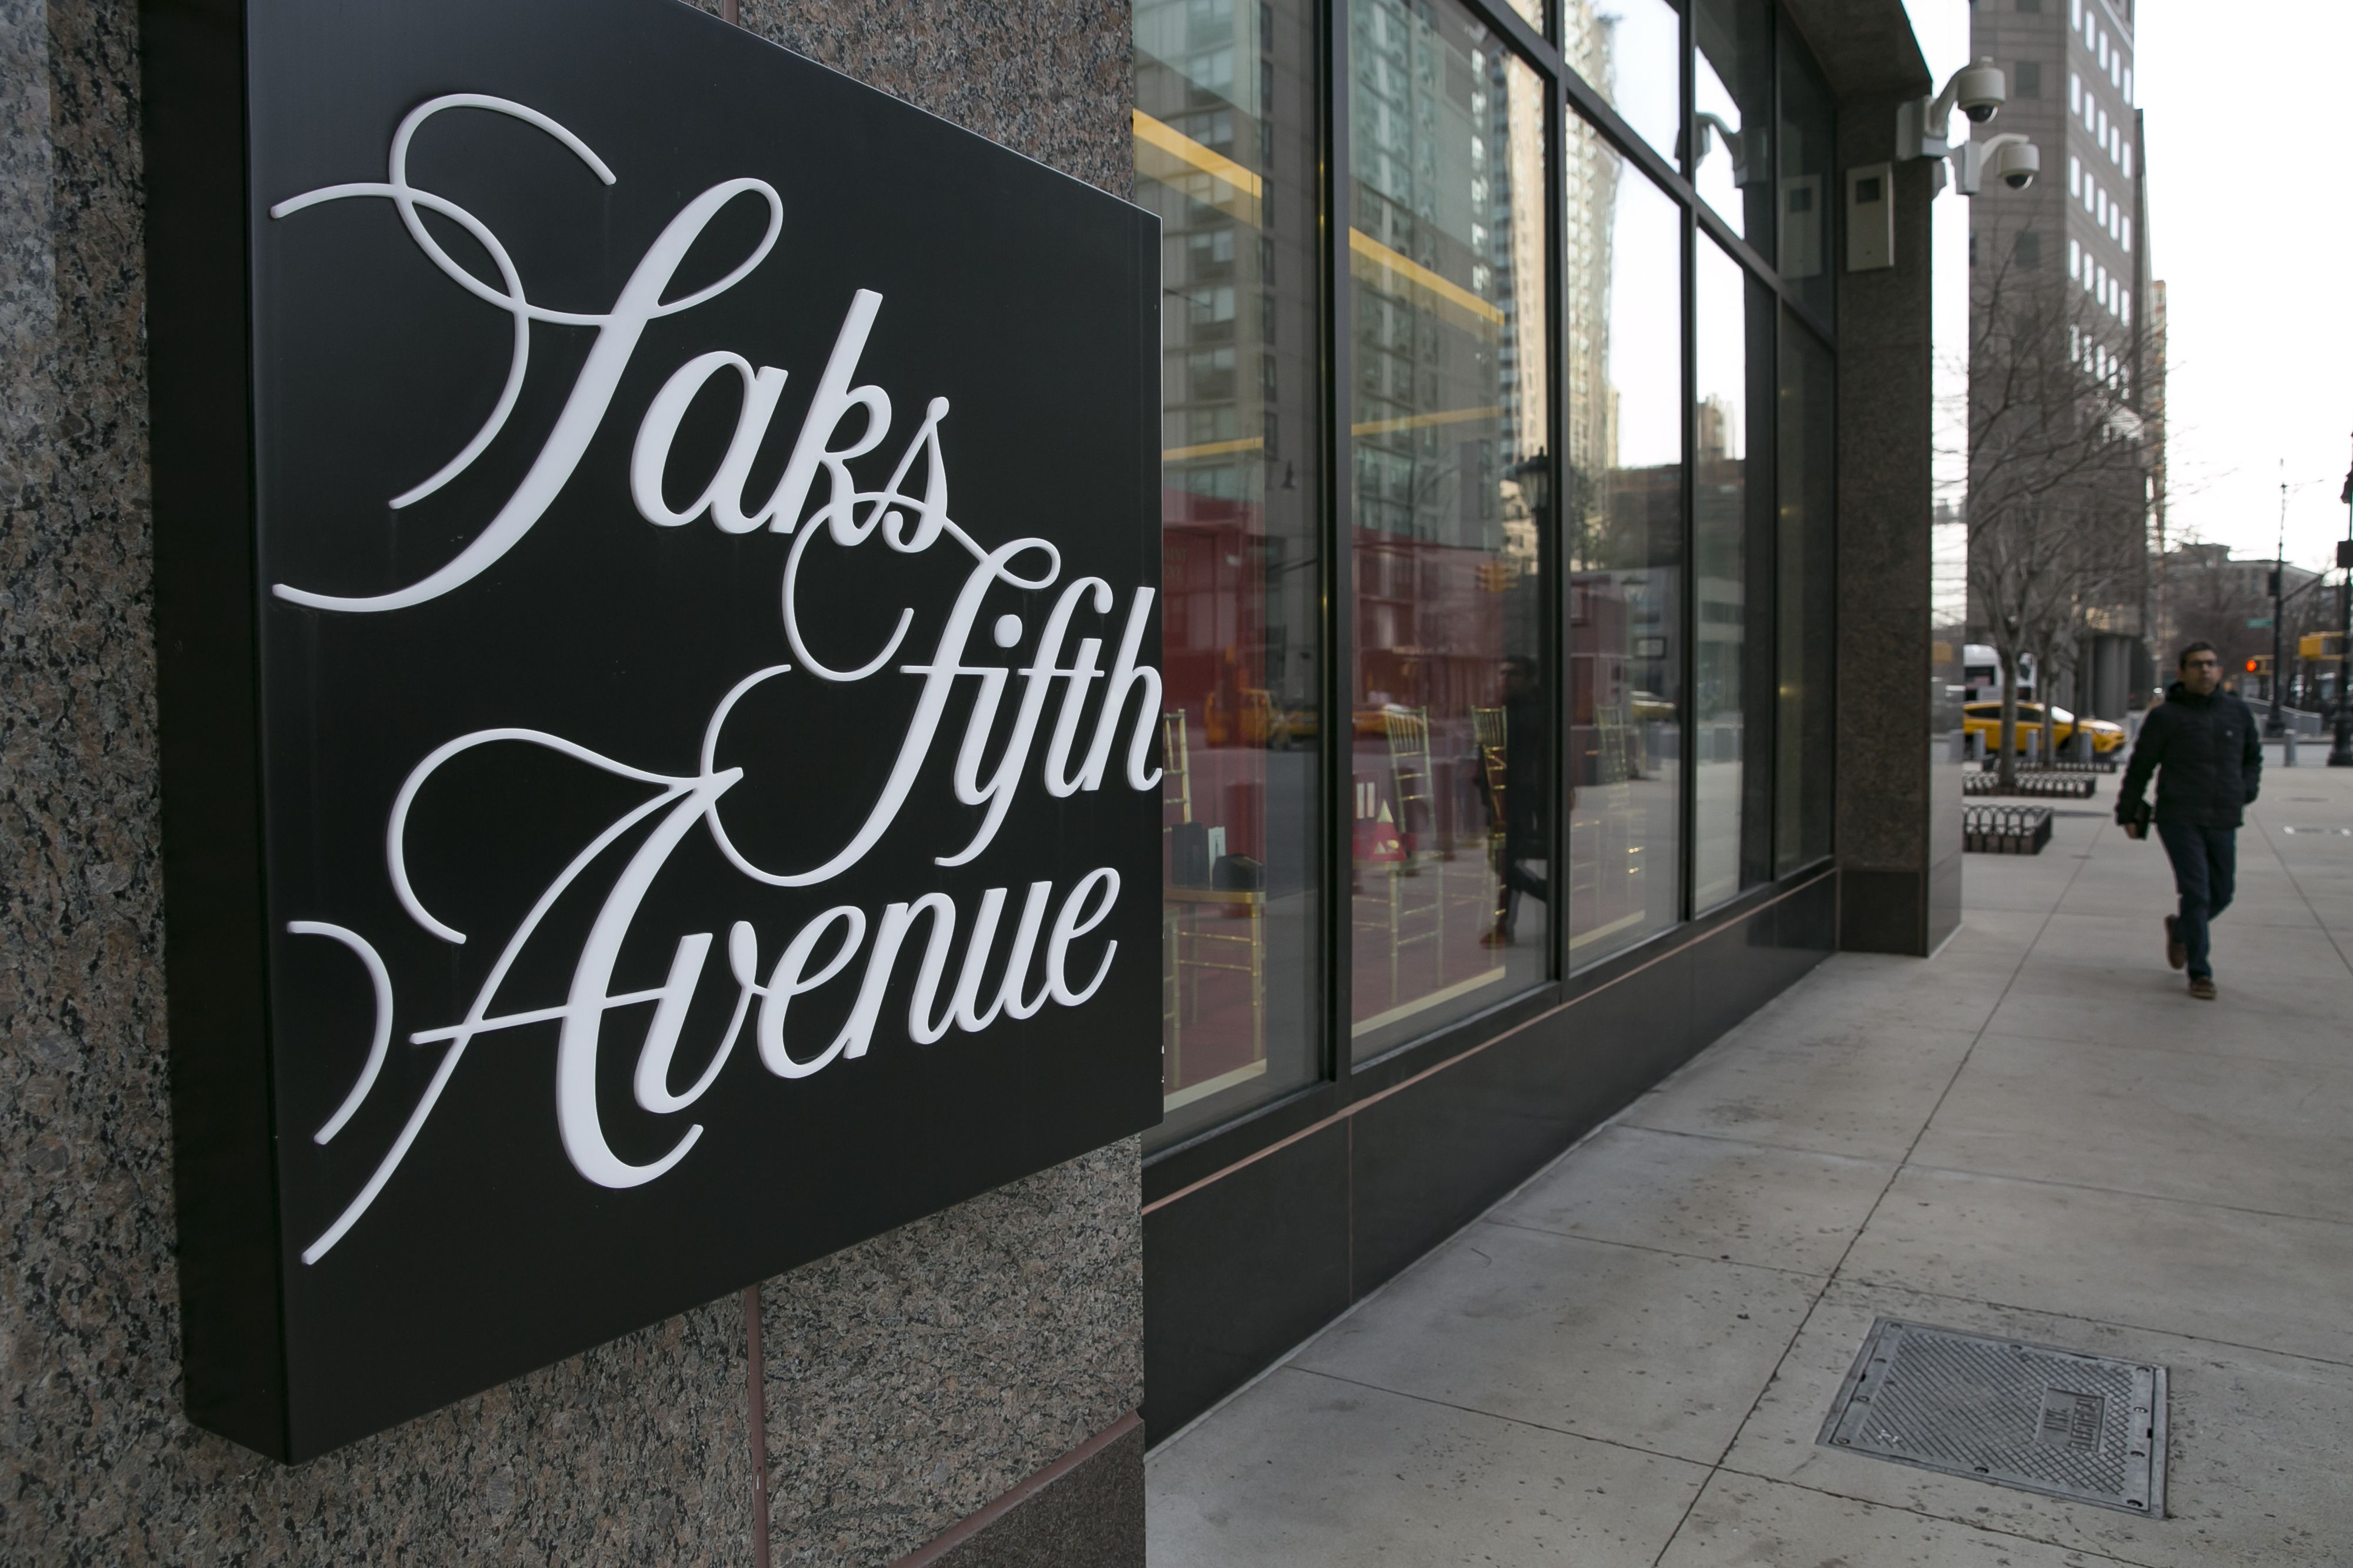 Chairman of Saks-owner Hudson's Bay Company bids to buy retailer